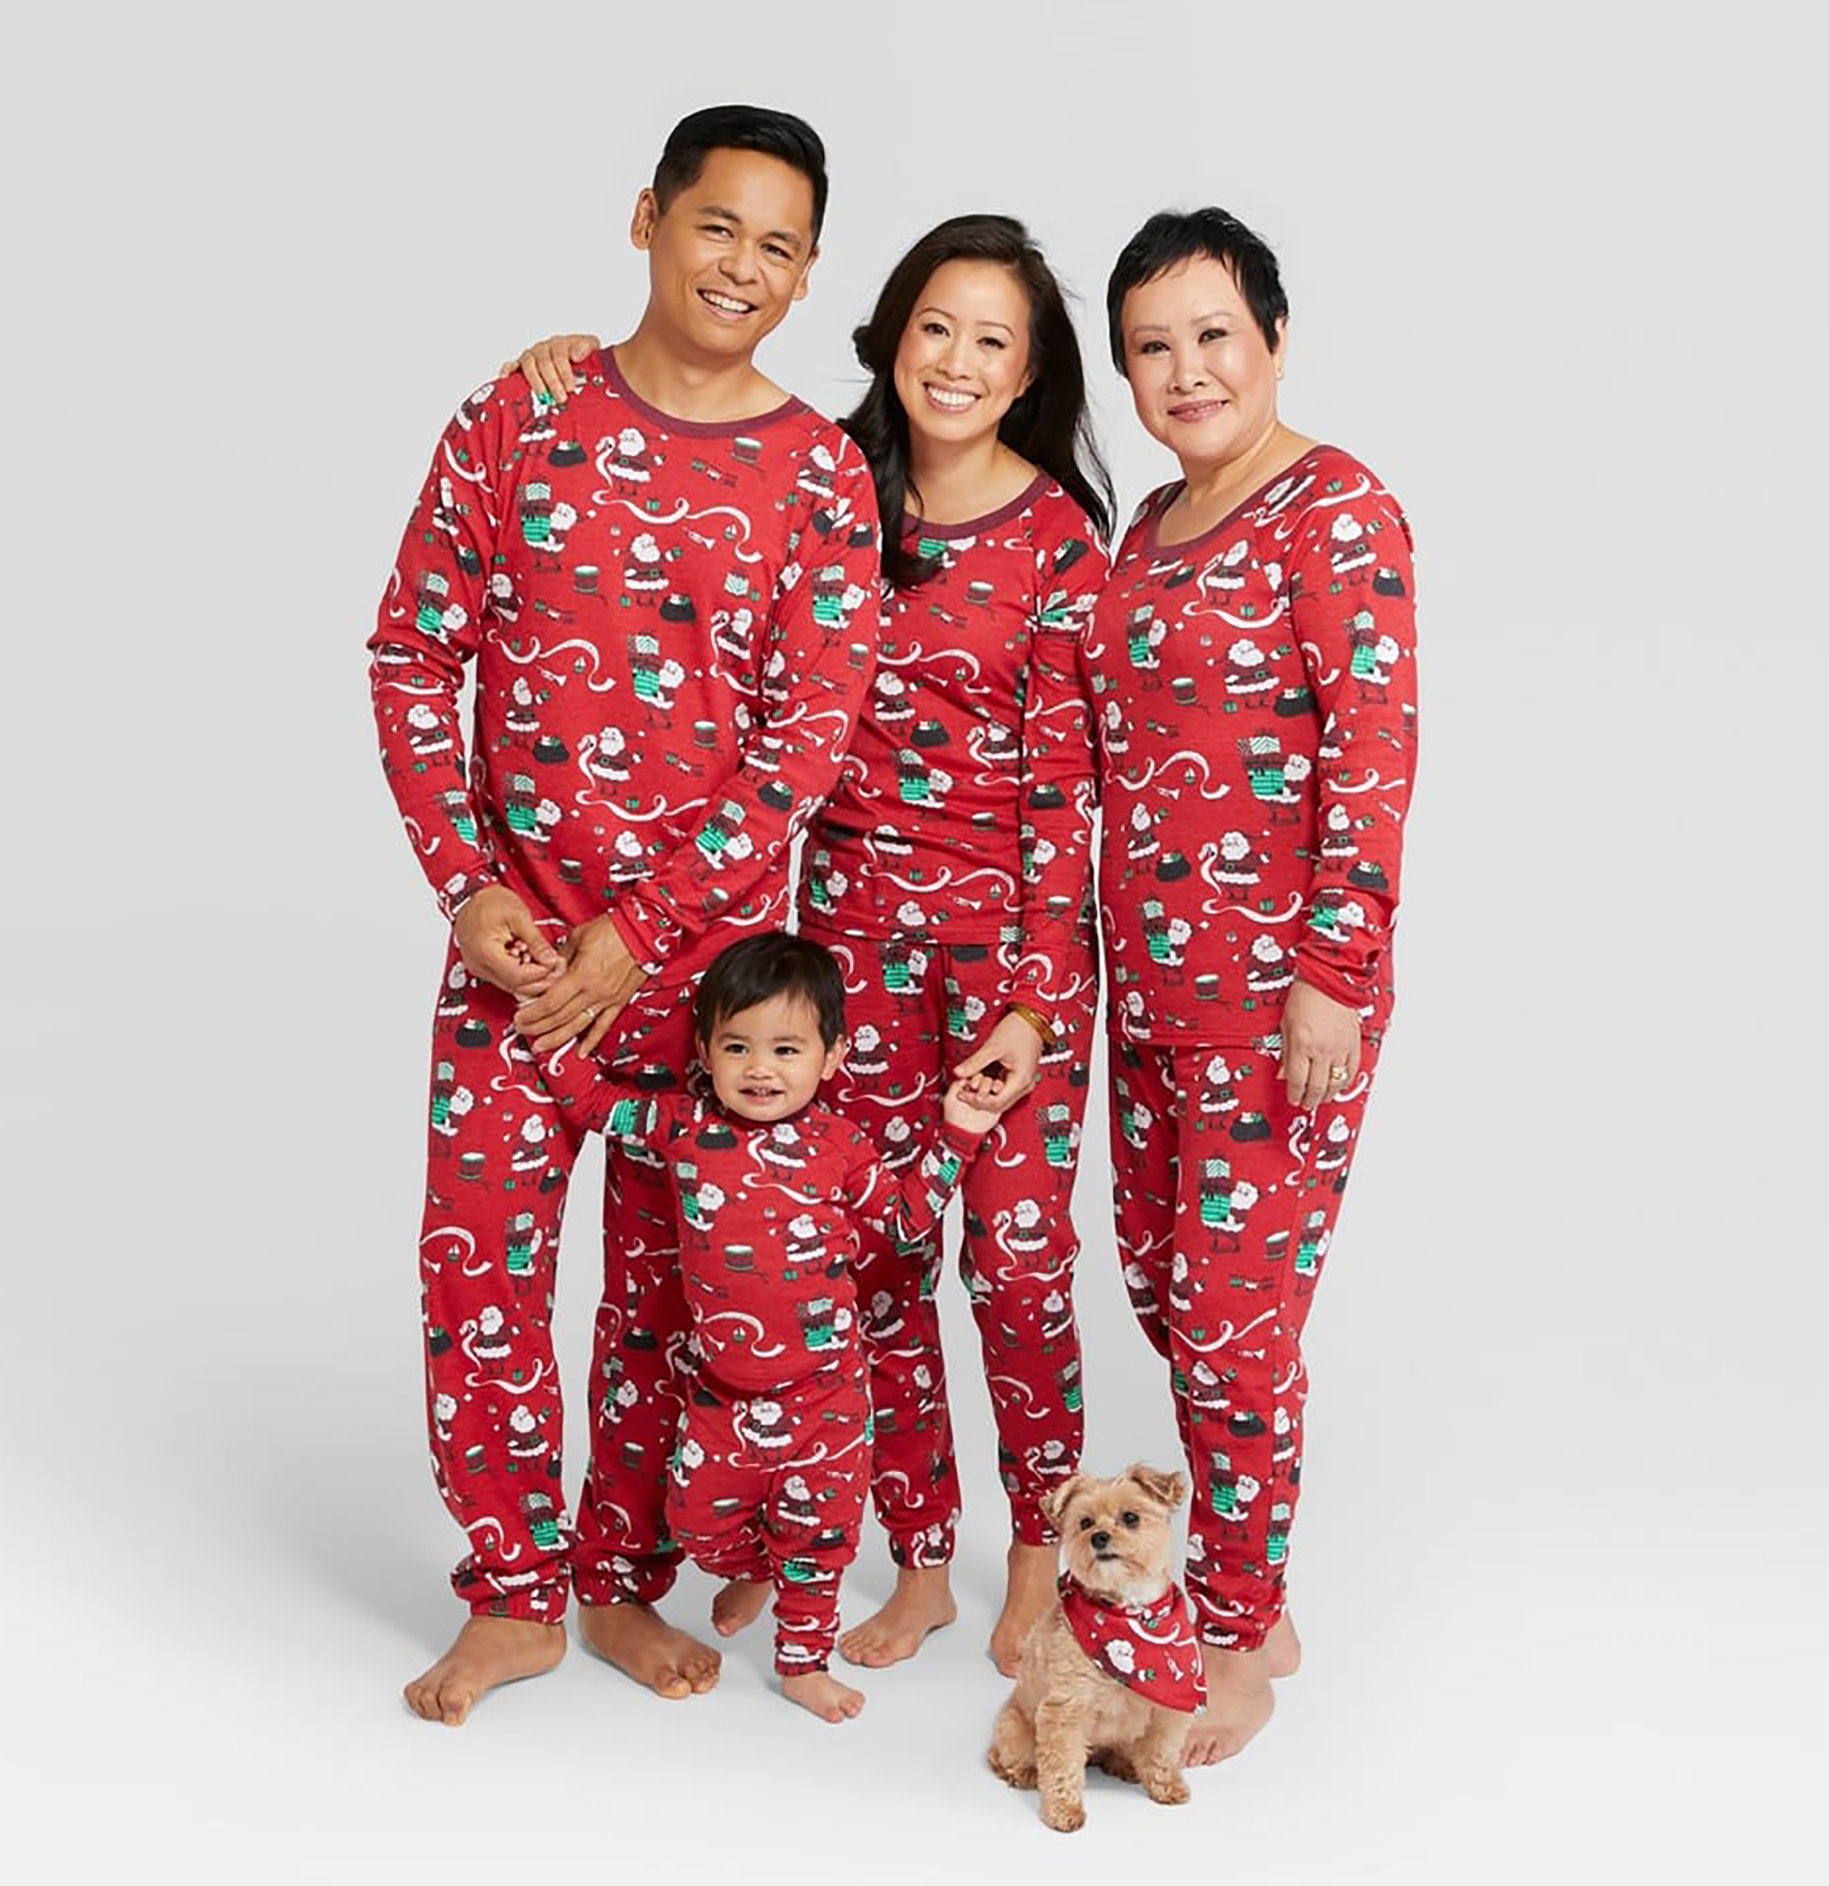 a78e502889 Nite Nite Munki Munki Holiday Santa s List Family Pajamas Collection